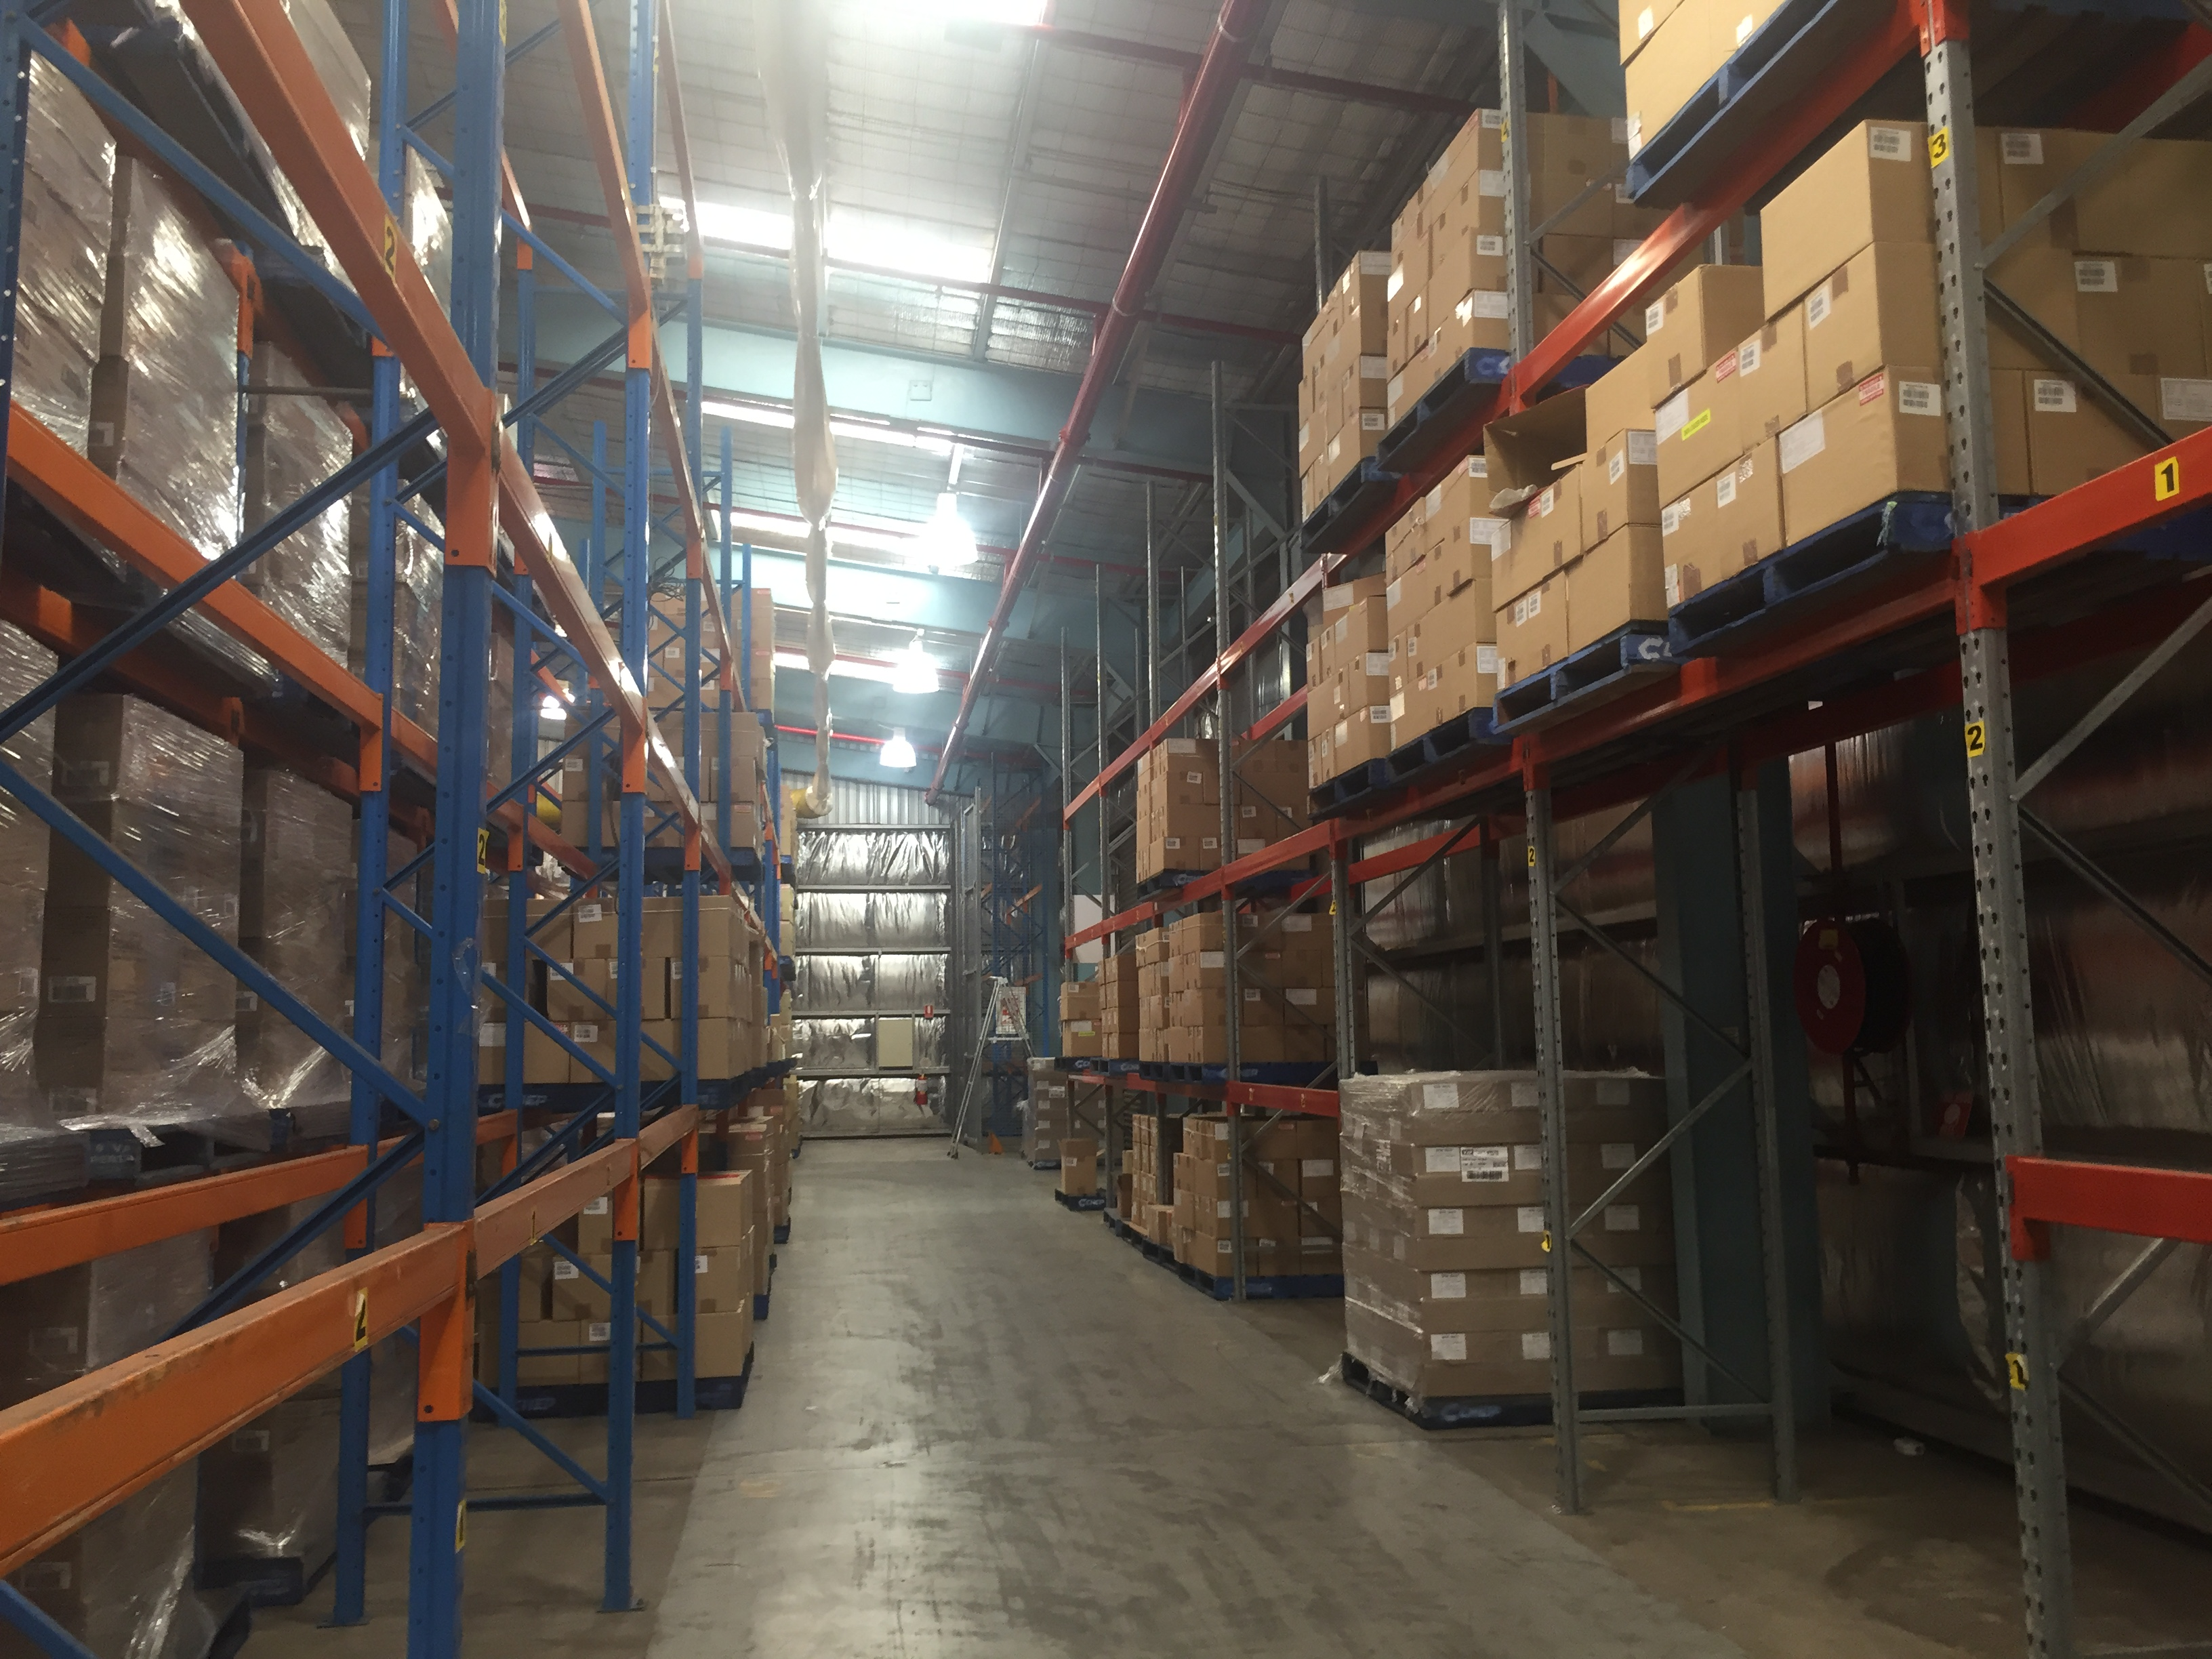 Woolworths and Cold Logic Distribution Centre in Queensland